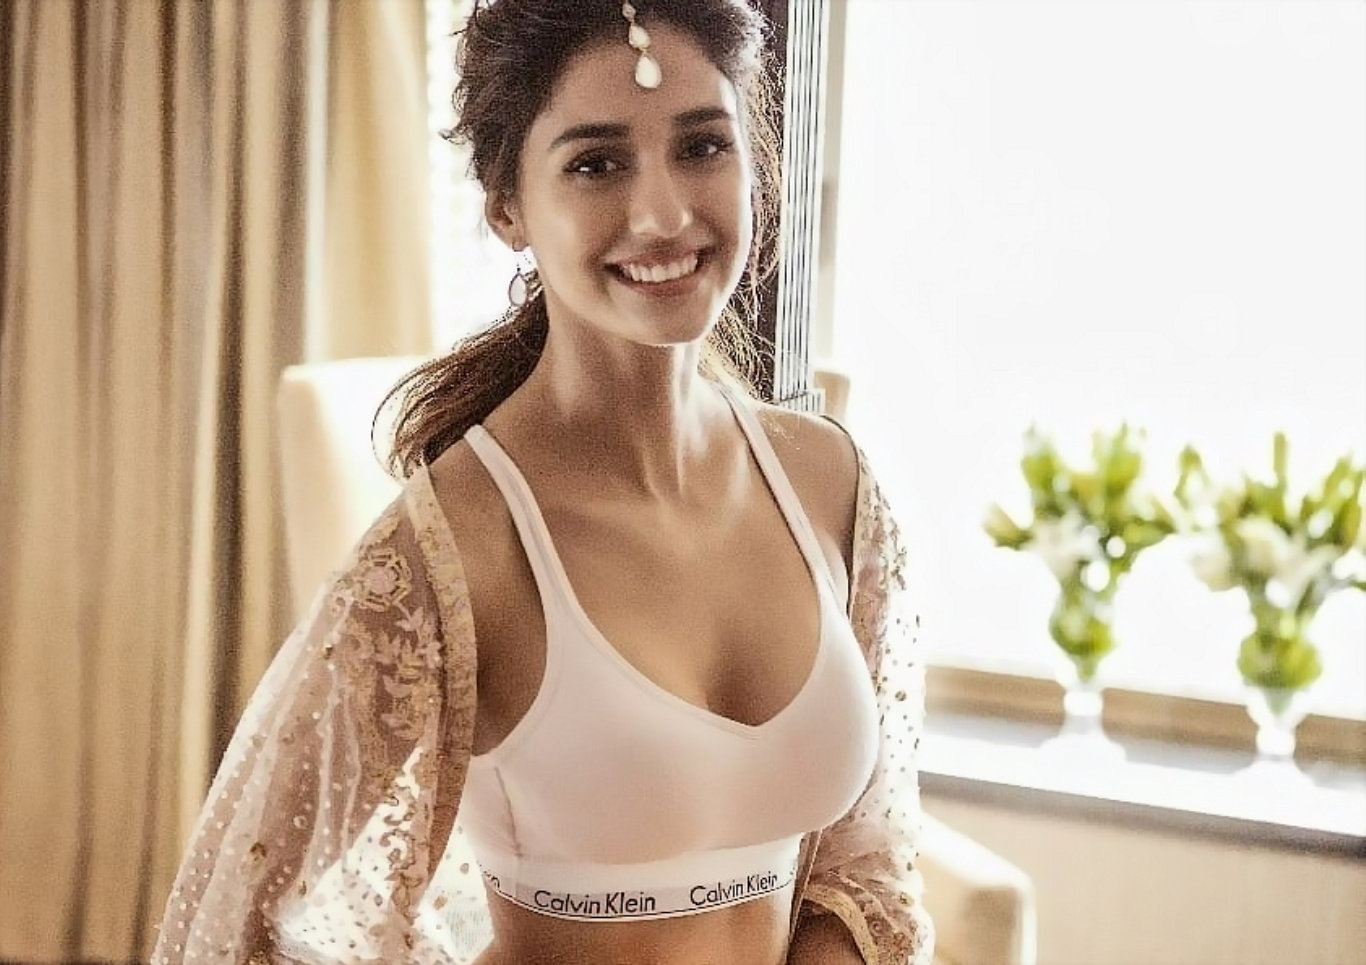 Disha Patani Sports Bikini Hot Wallpaper